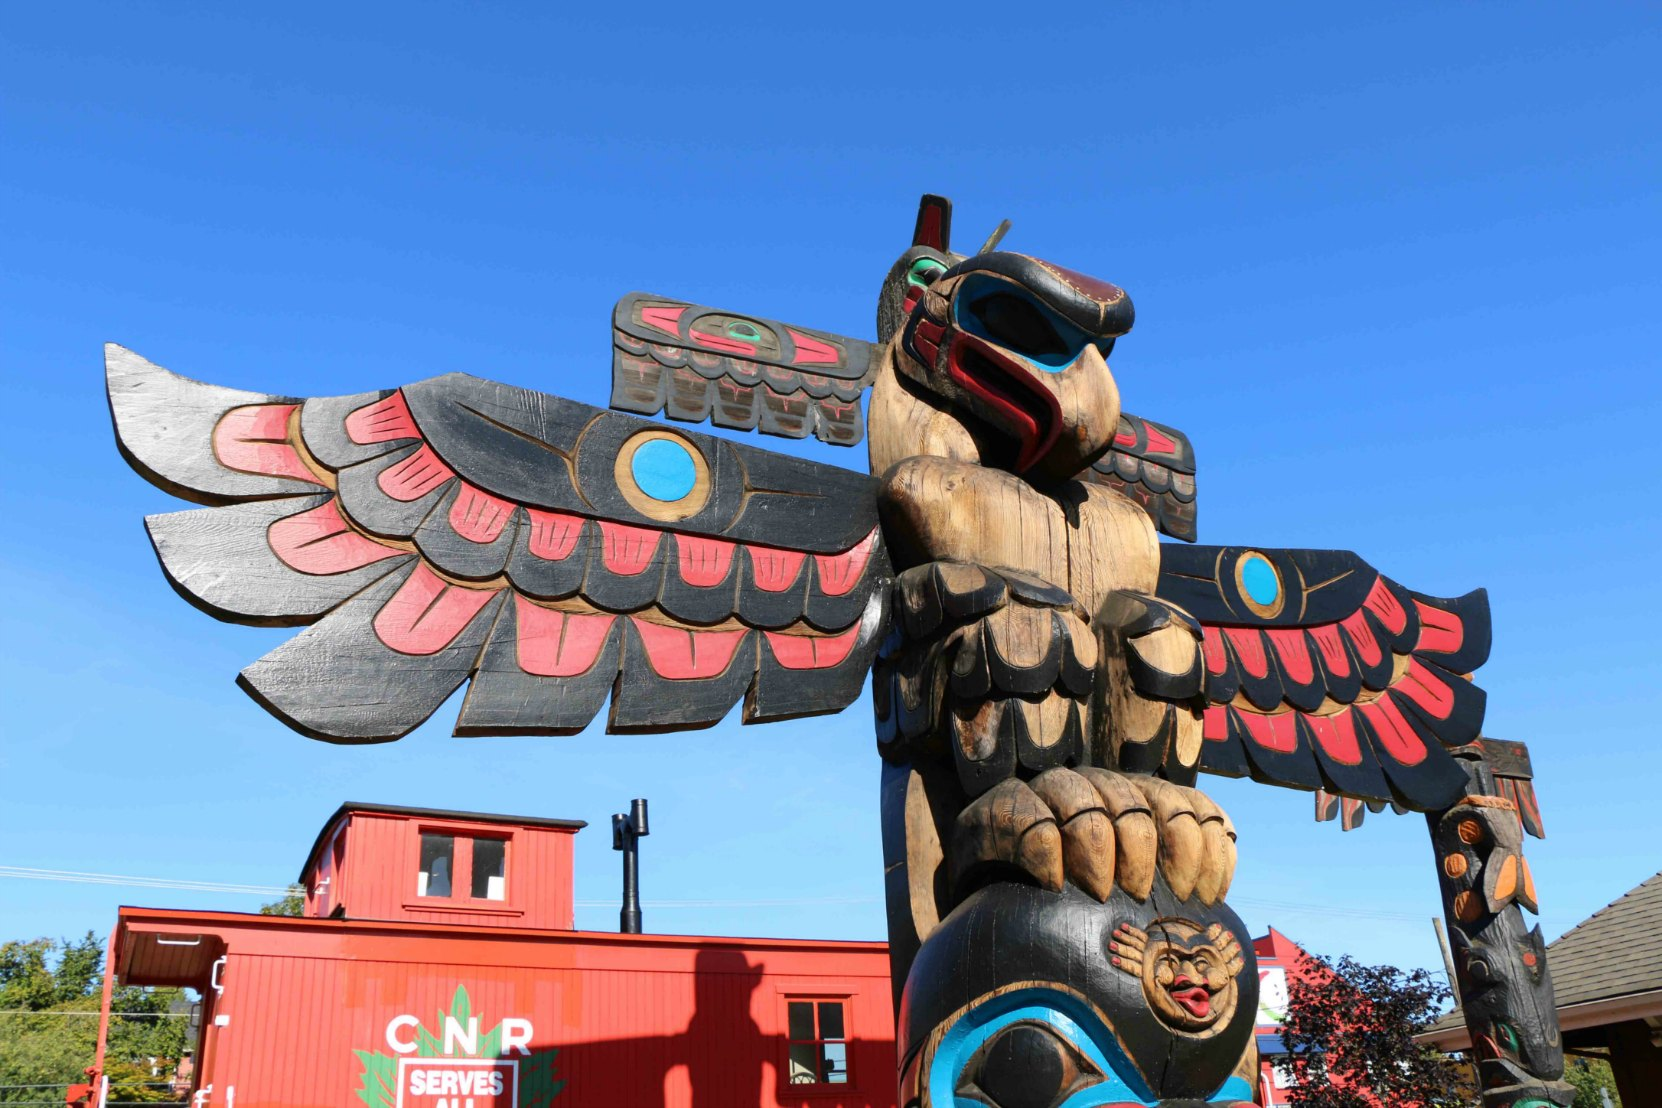 The Feast - Eagle figure - Canada Avenue and Kenneth Street